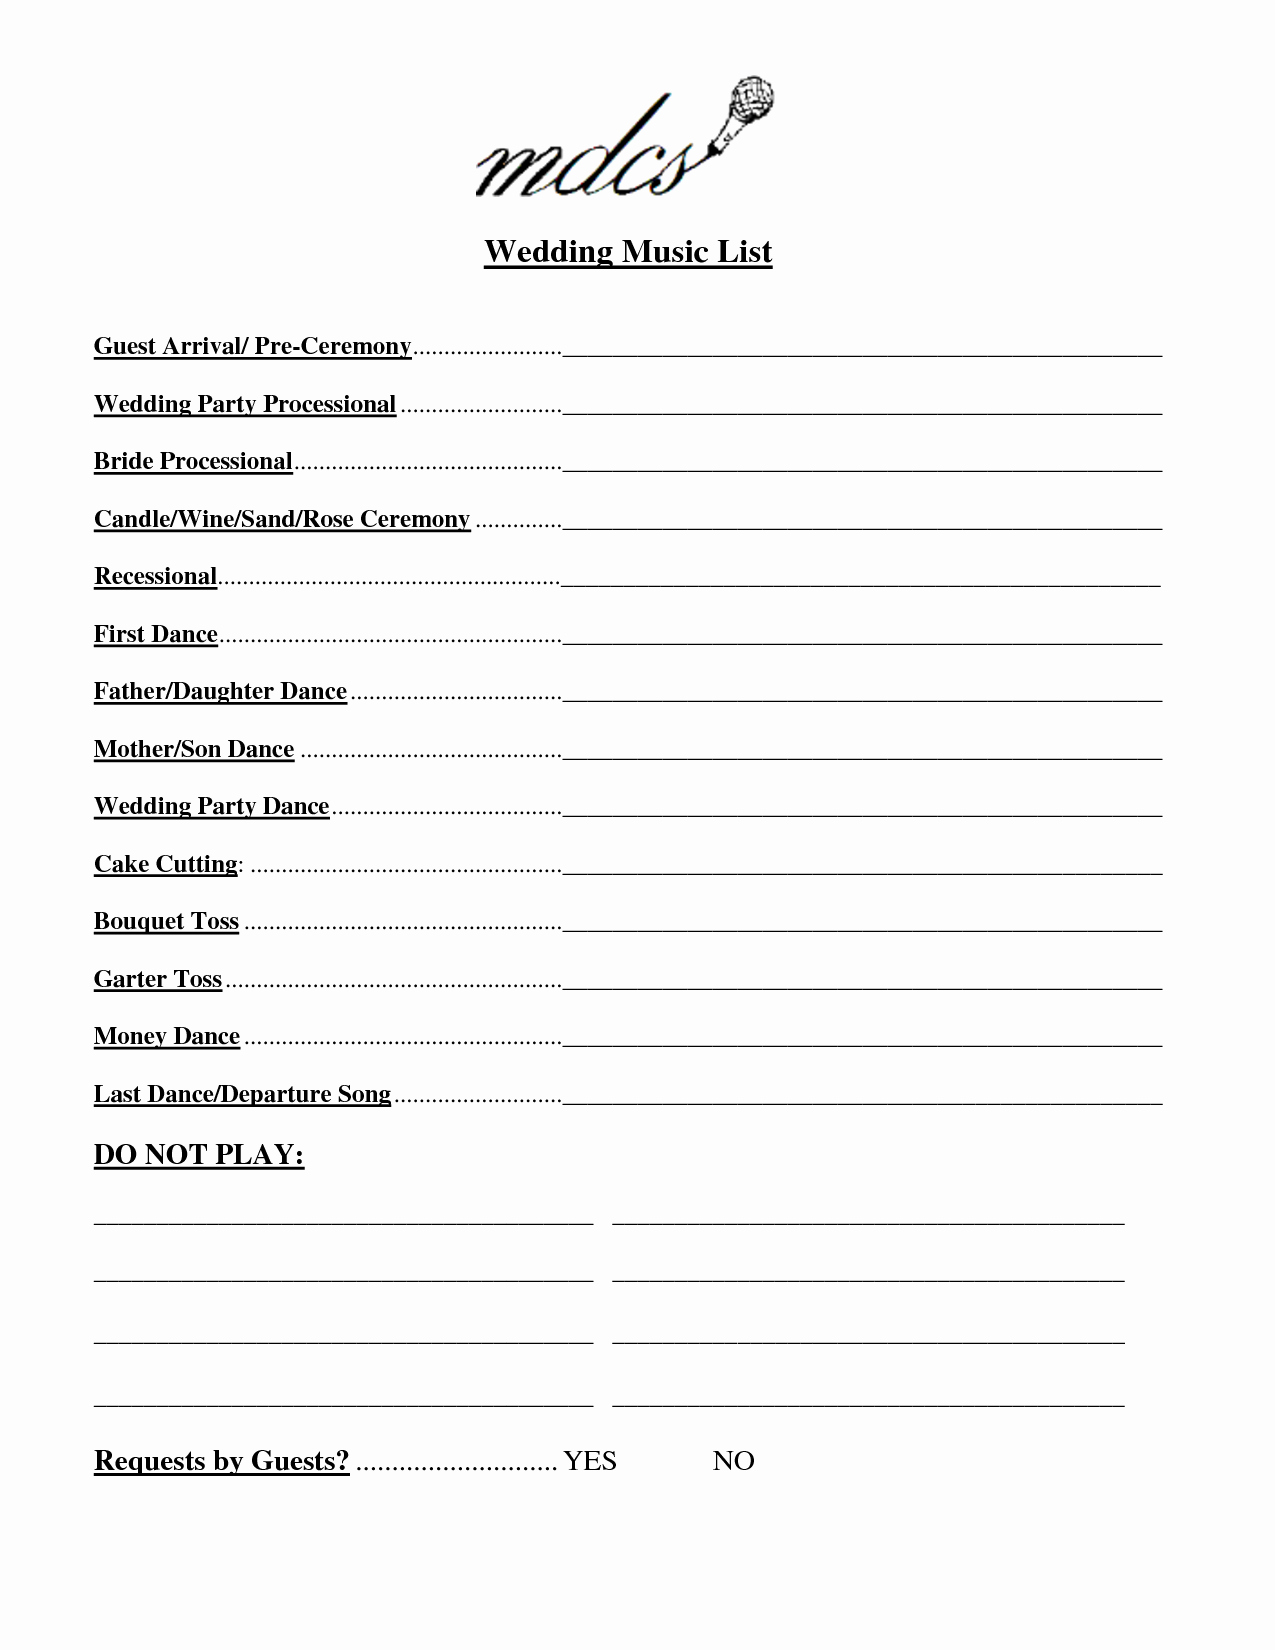 Wedding Reception song List Template New Wedding Party List Template Free